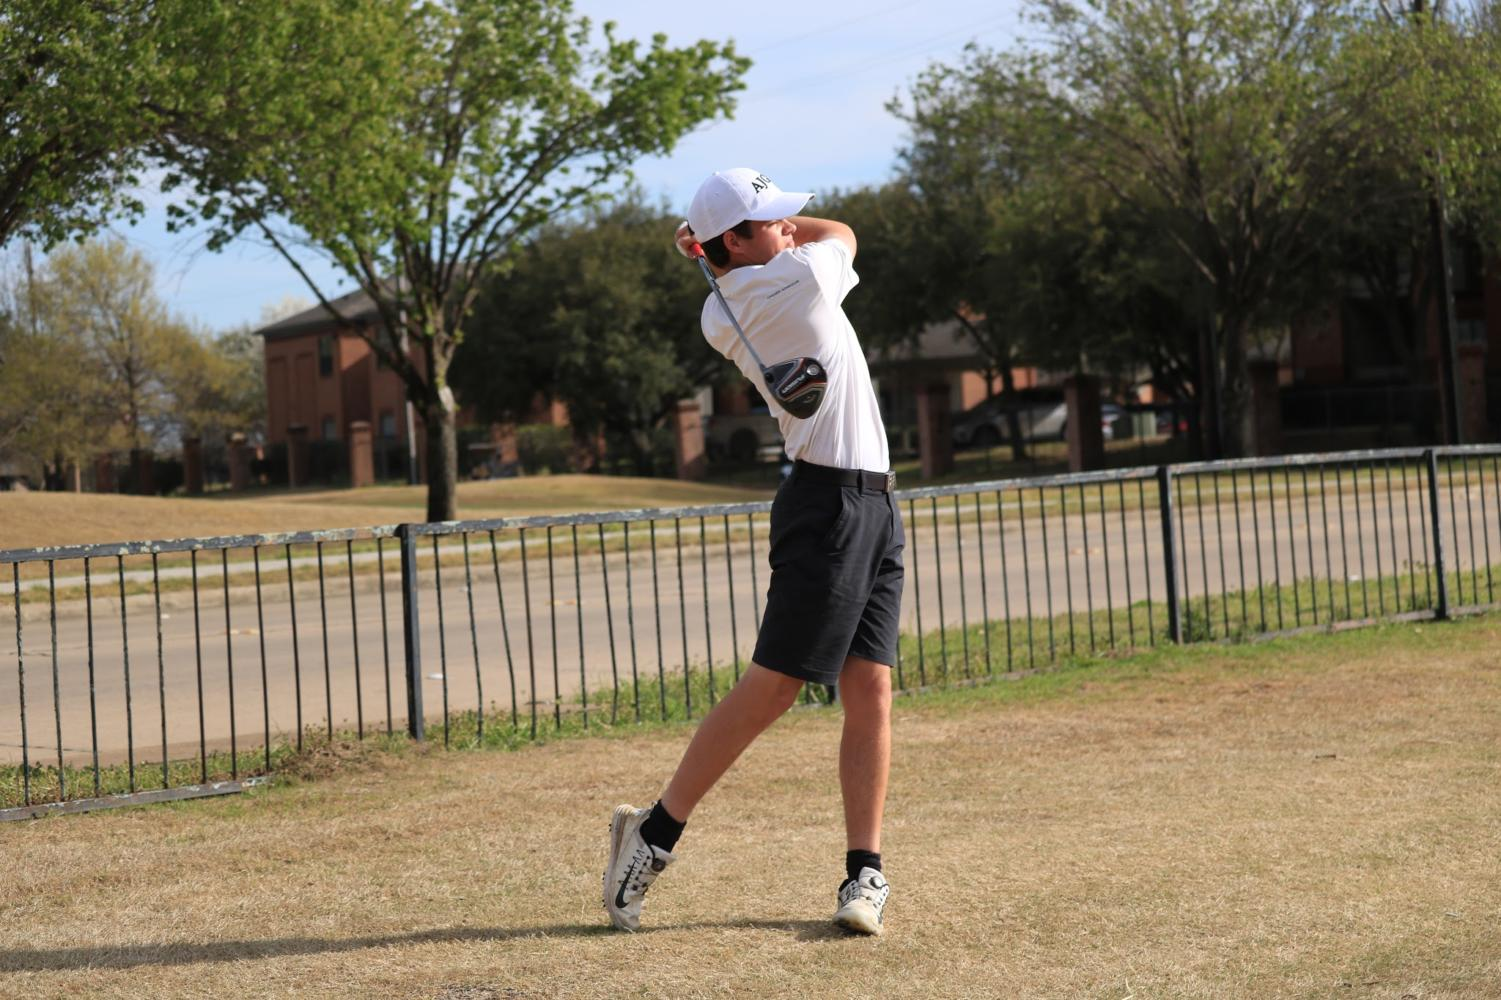 Coppell junior Ryan Schweitzer works on his drive after practice at the Riverchase Golf Course on March 21. Schweitzer joined the CHS junior varsity golf team his freshman year and has since developed his passion for the sport and moved up to  the varsity team.